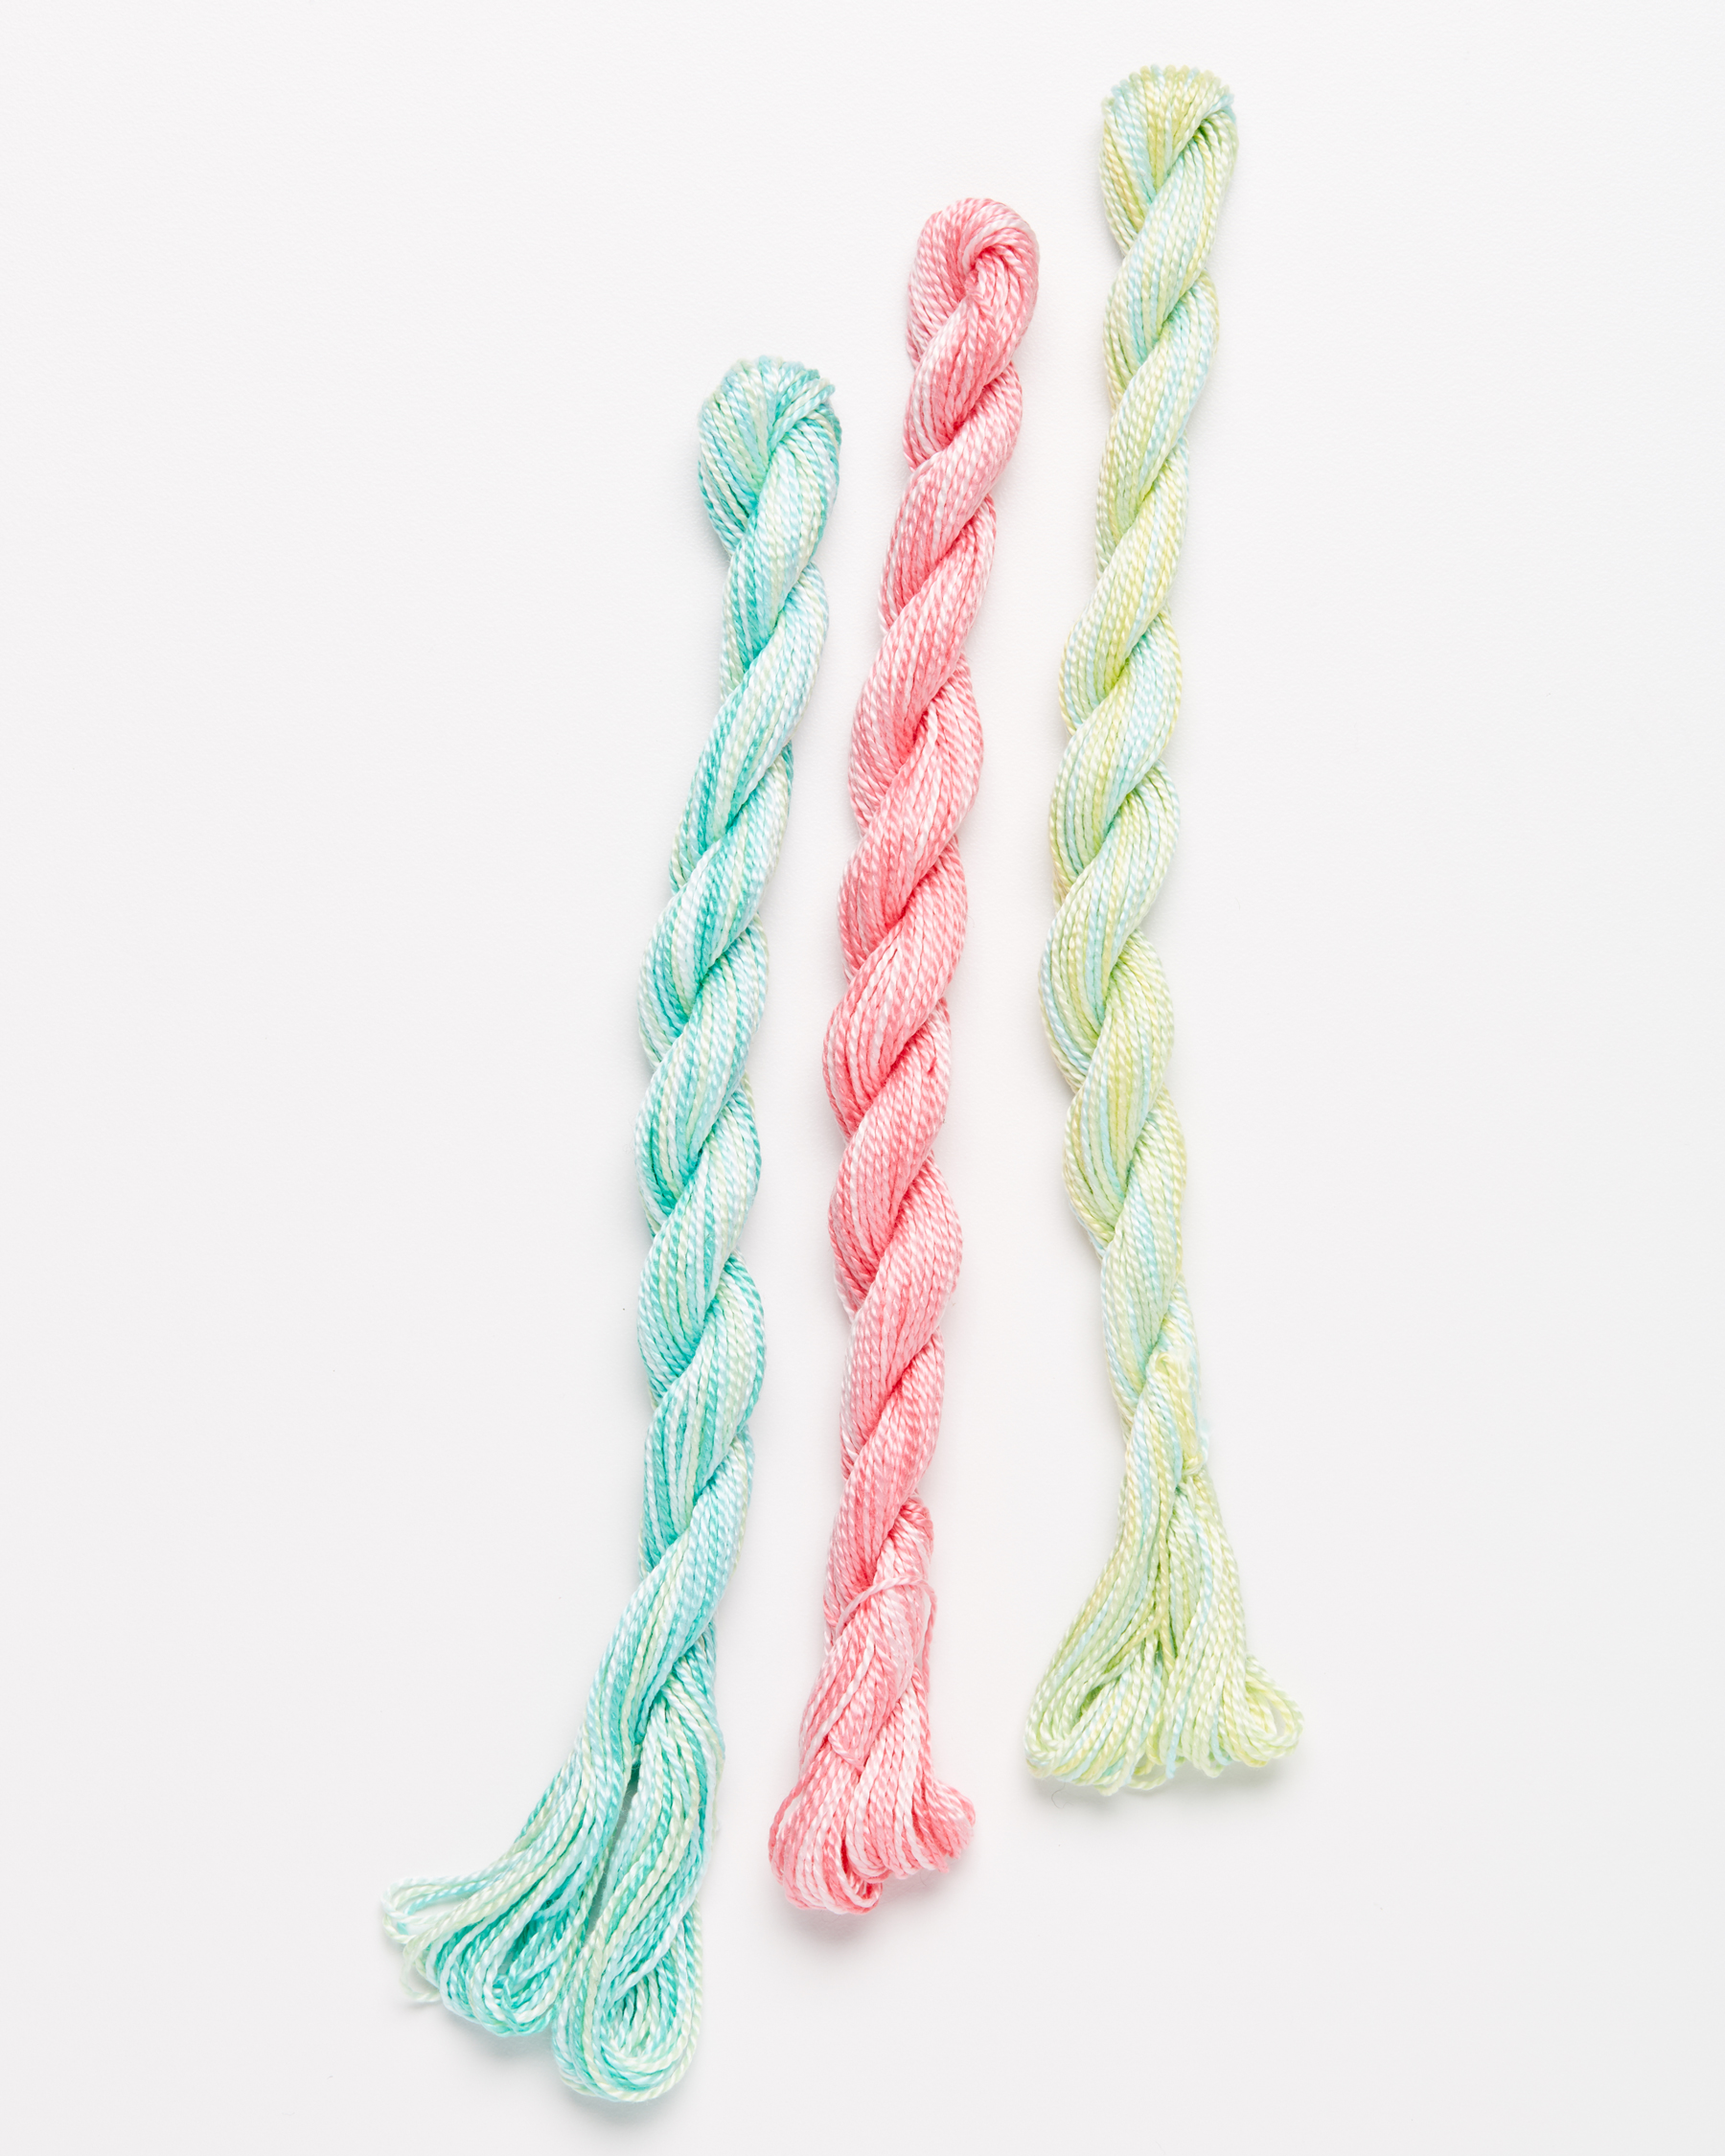 pastel variegated embroidery yarn against a white background